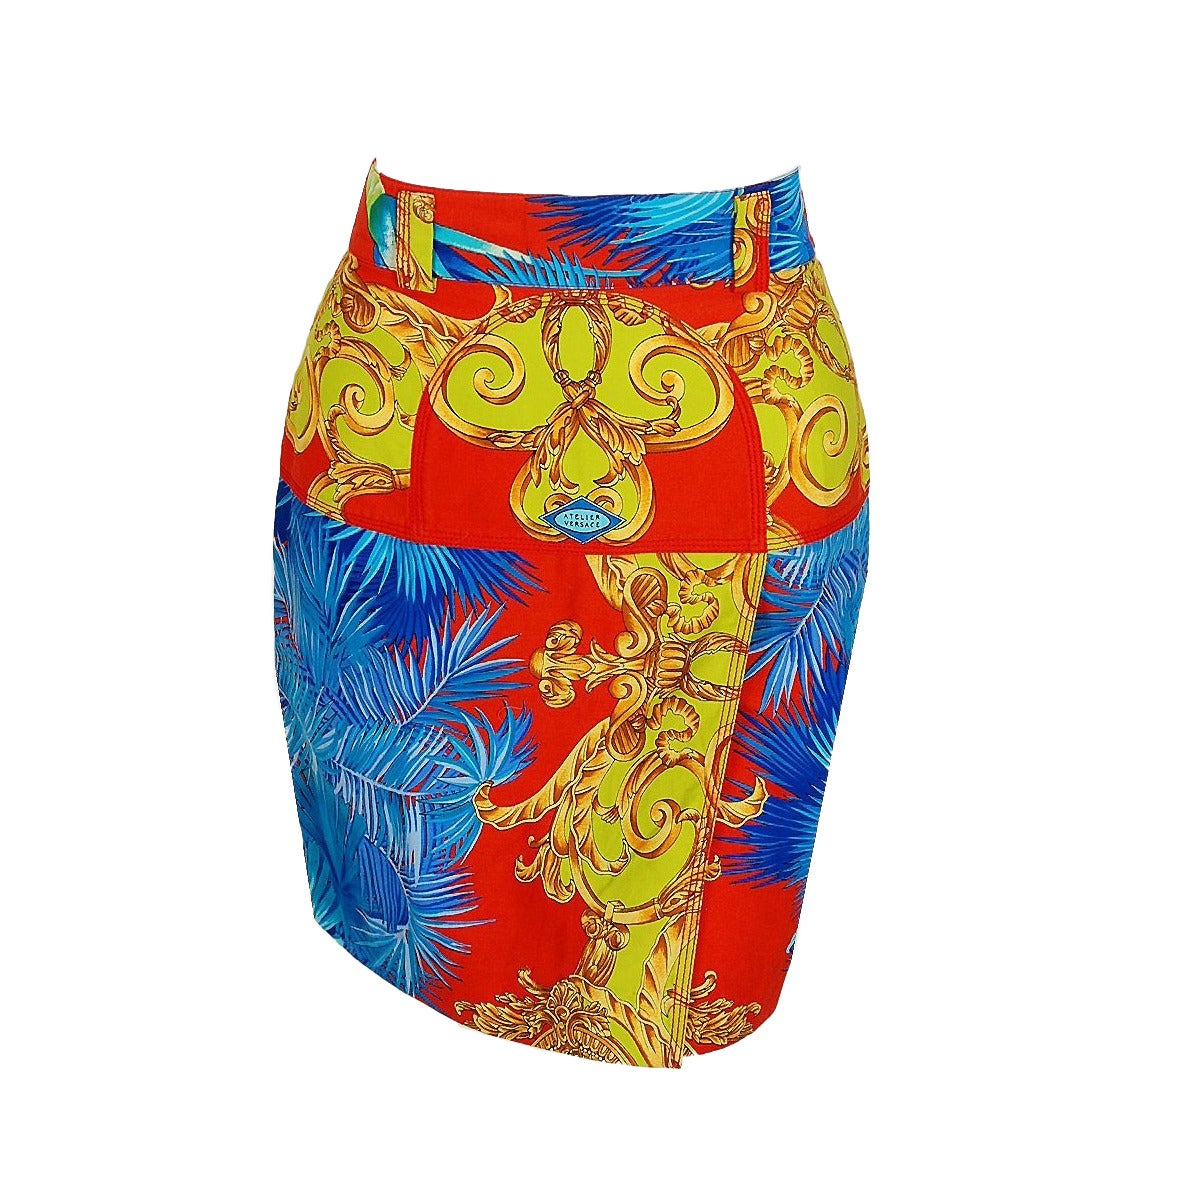 1990's Gianni Versace Couture Baroque Novelty Palm-Trees Print Mini Skirt 1